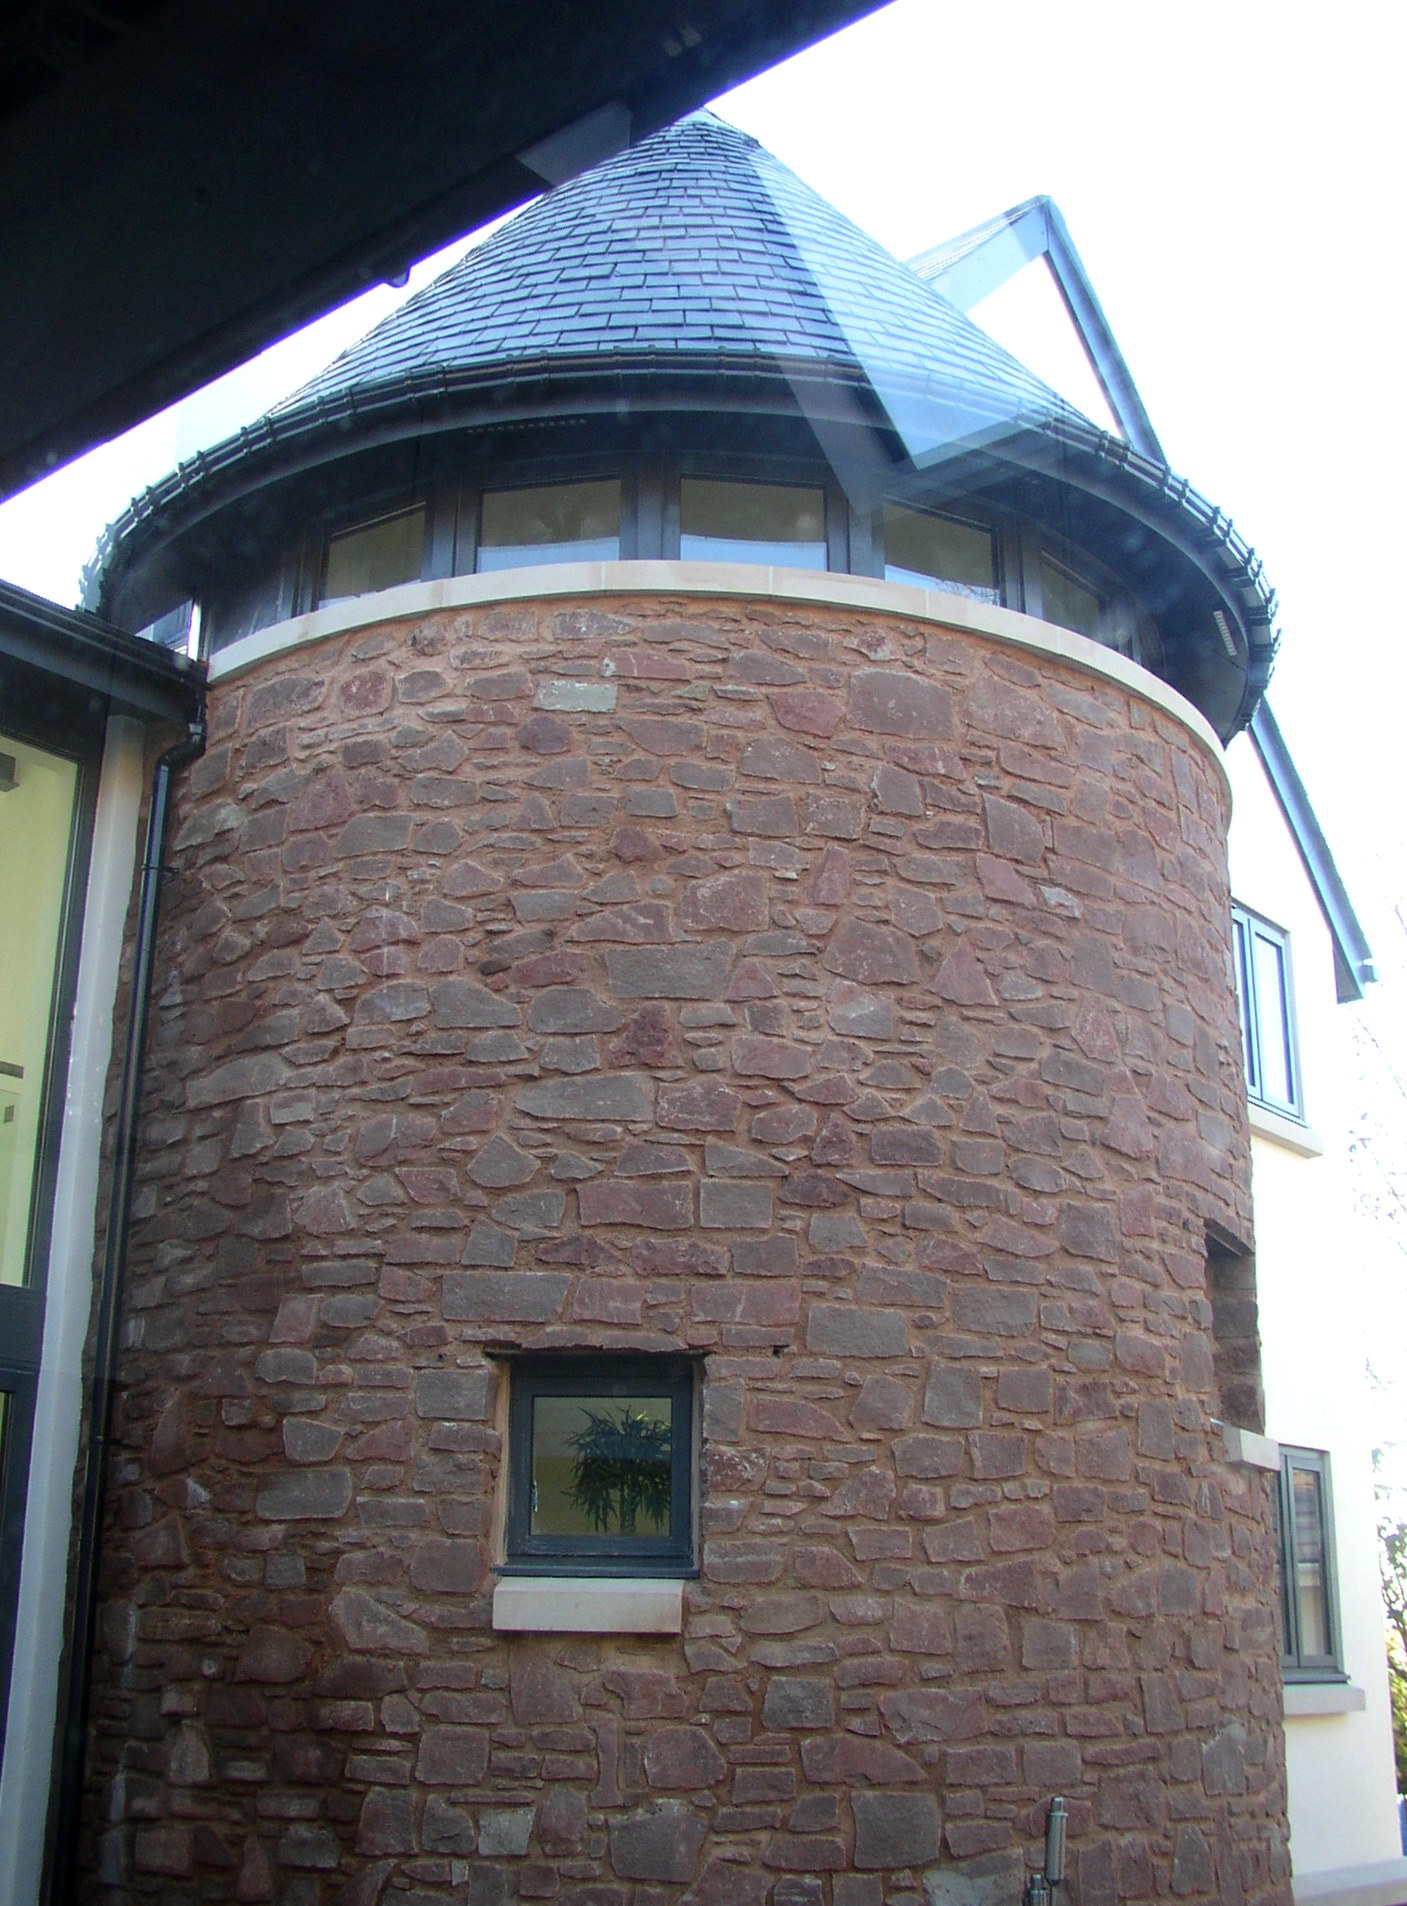 Stone staircase tower